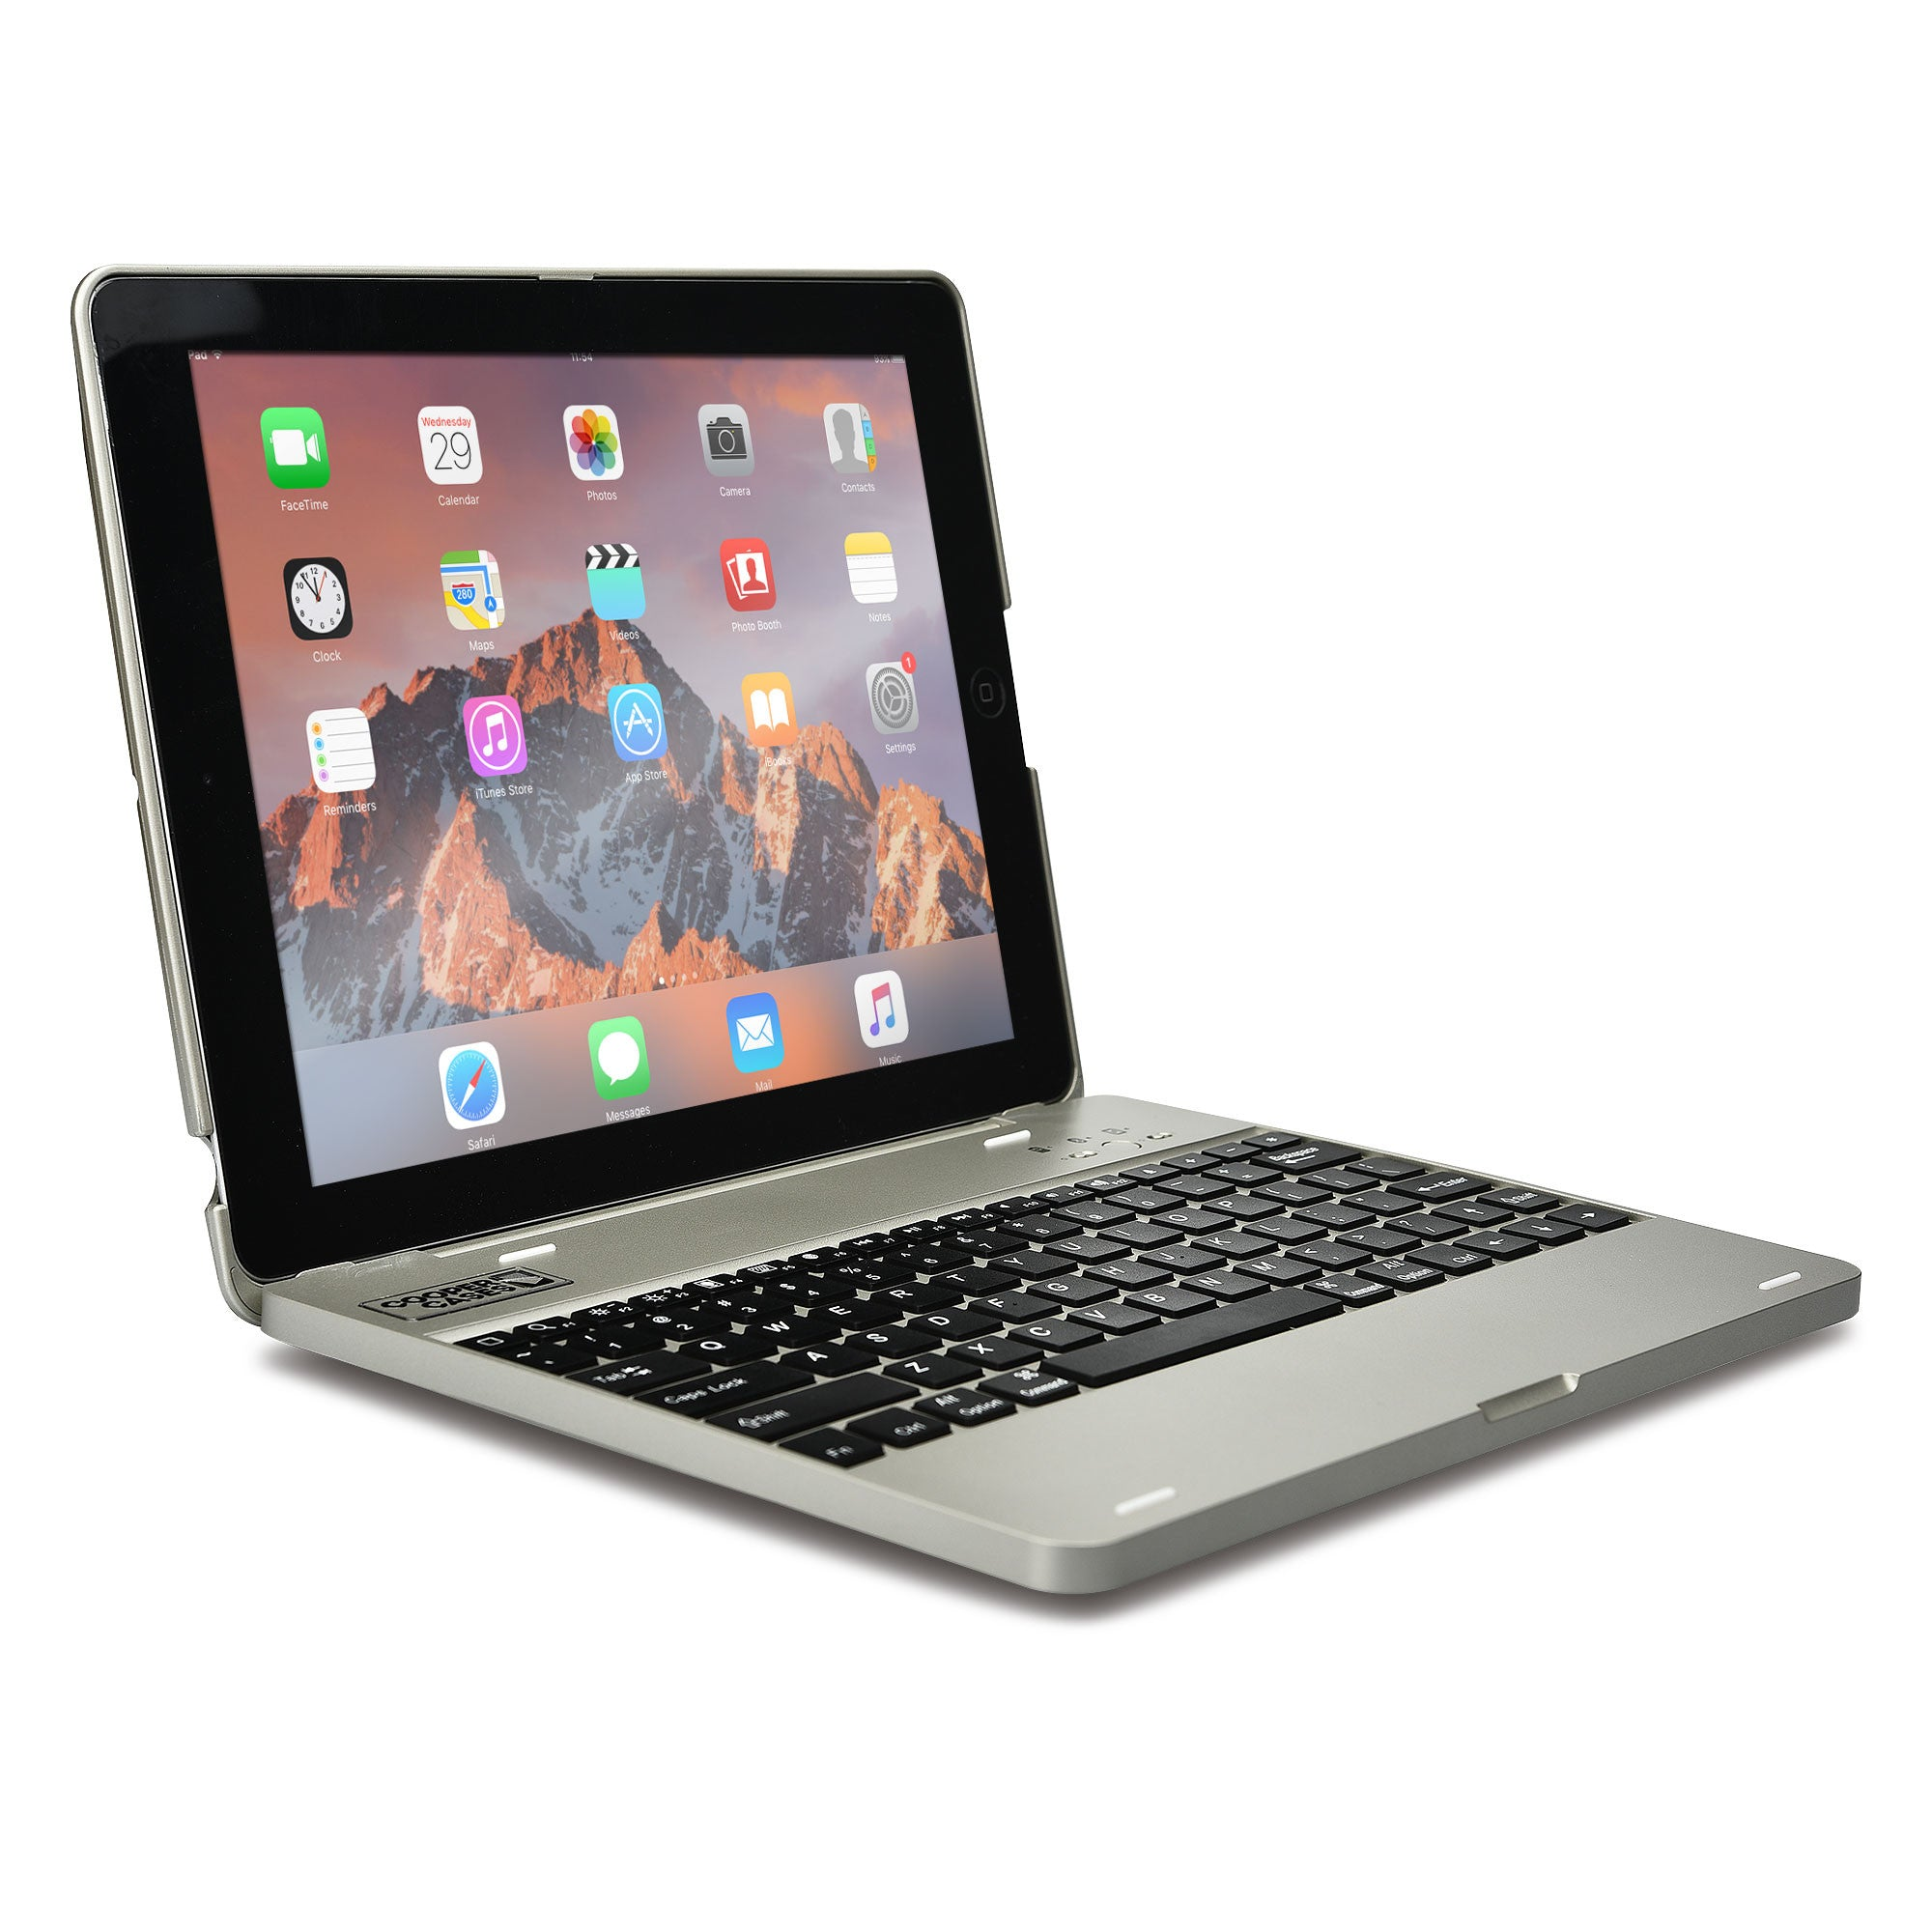 f933c4a39e6 Cooper Kai Skel P1 Clamshell Keyboard Case with Built-in Powerbank for  Apple iPad 2/3/4